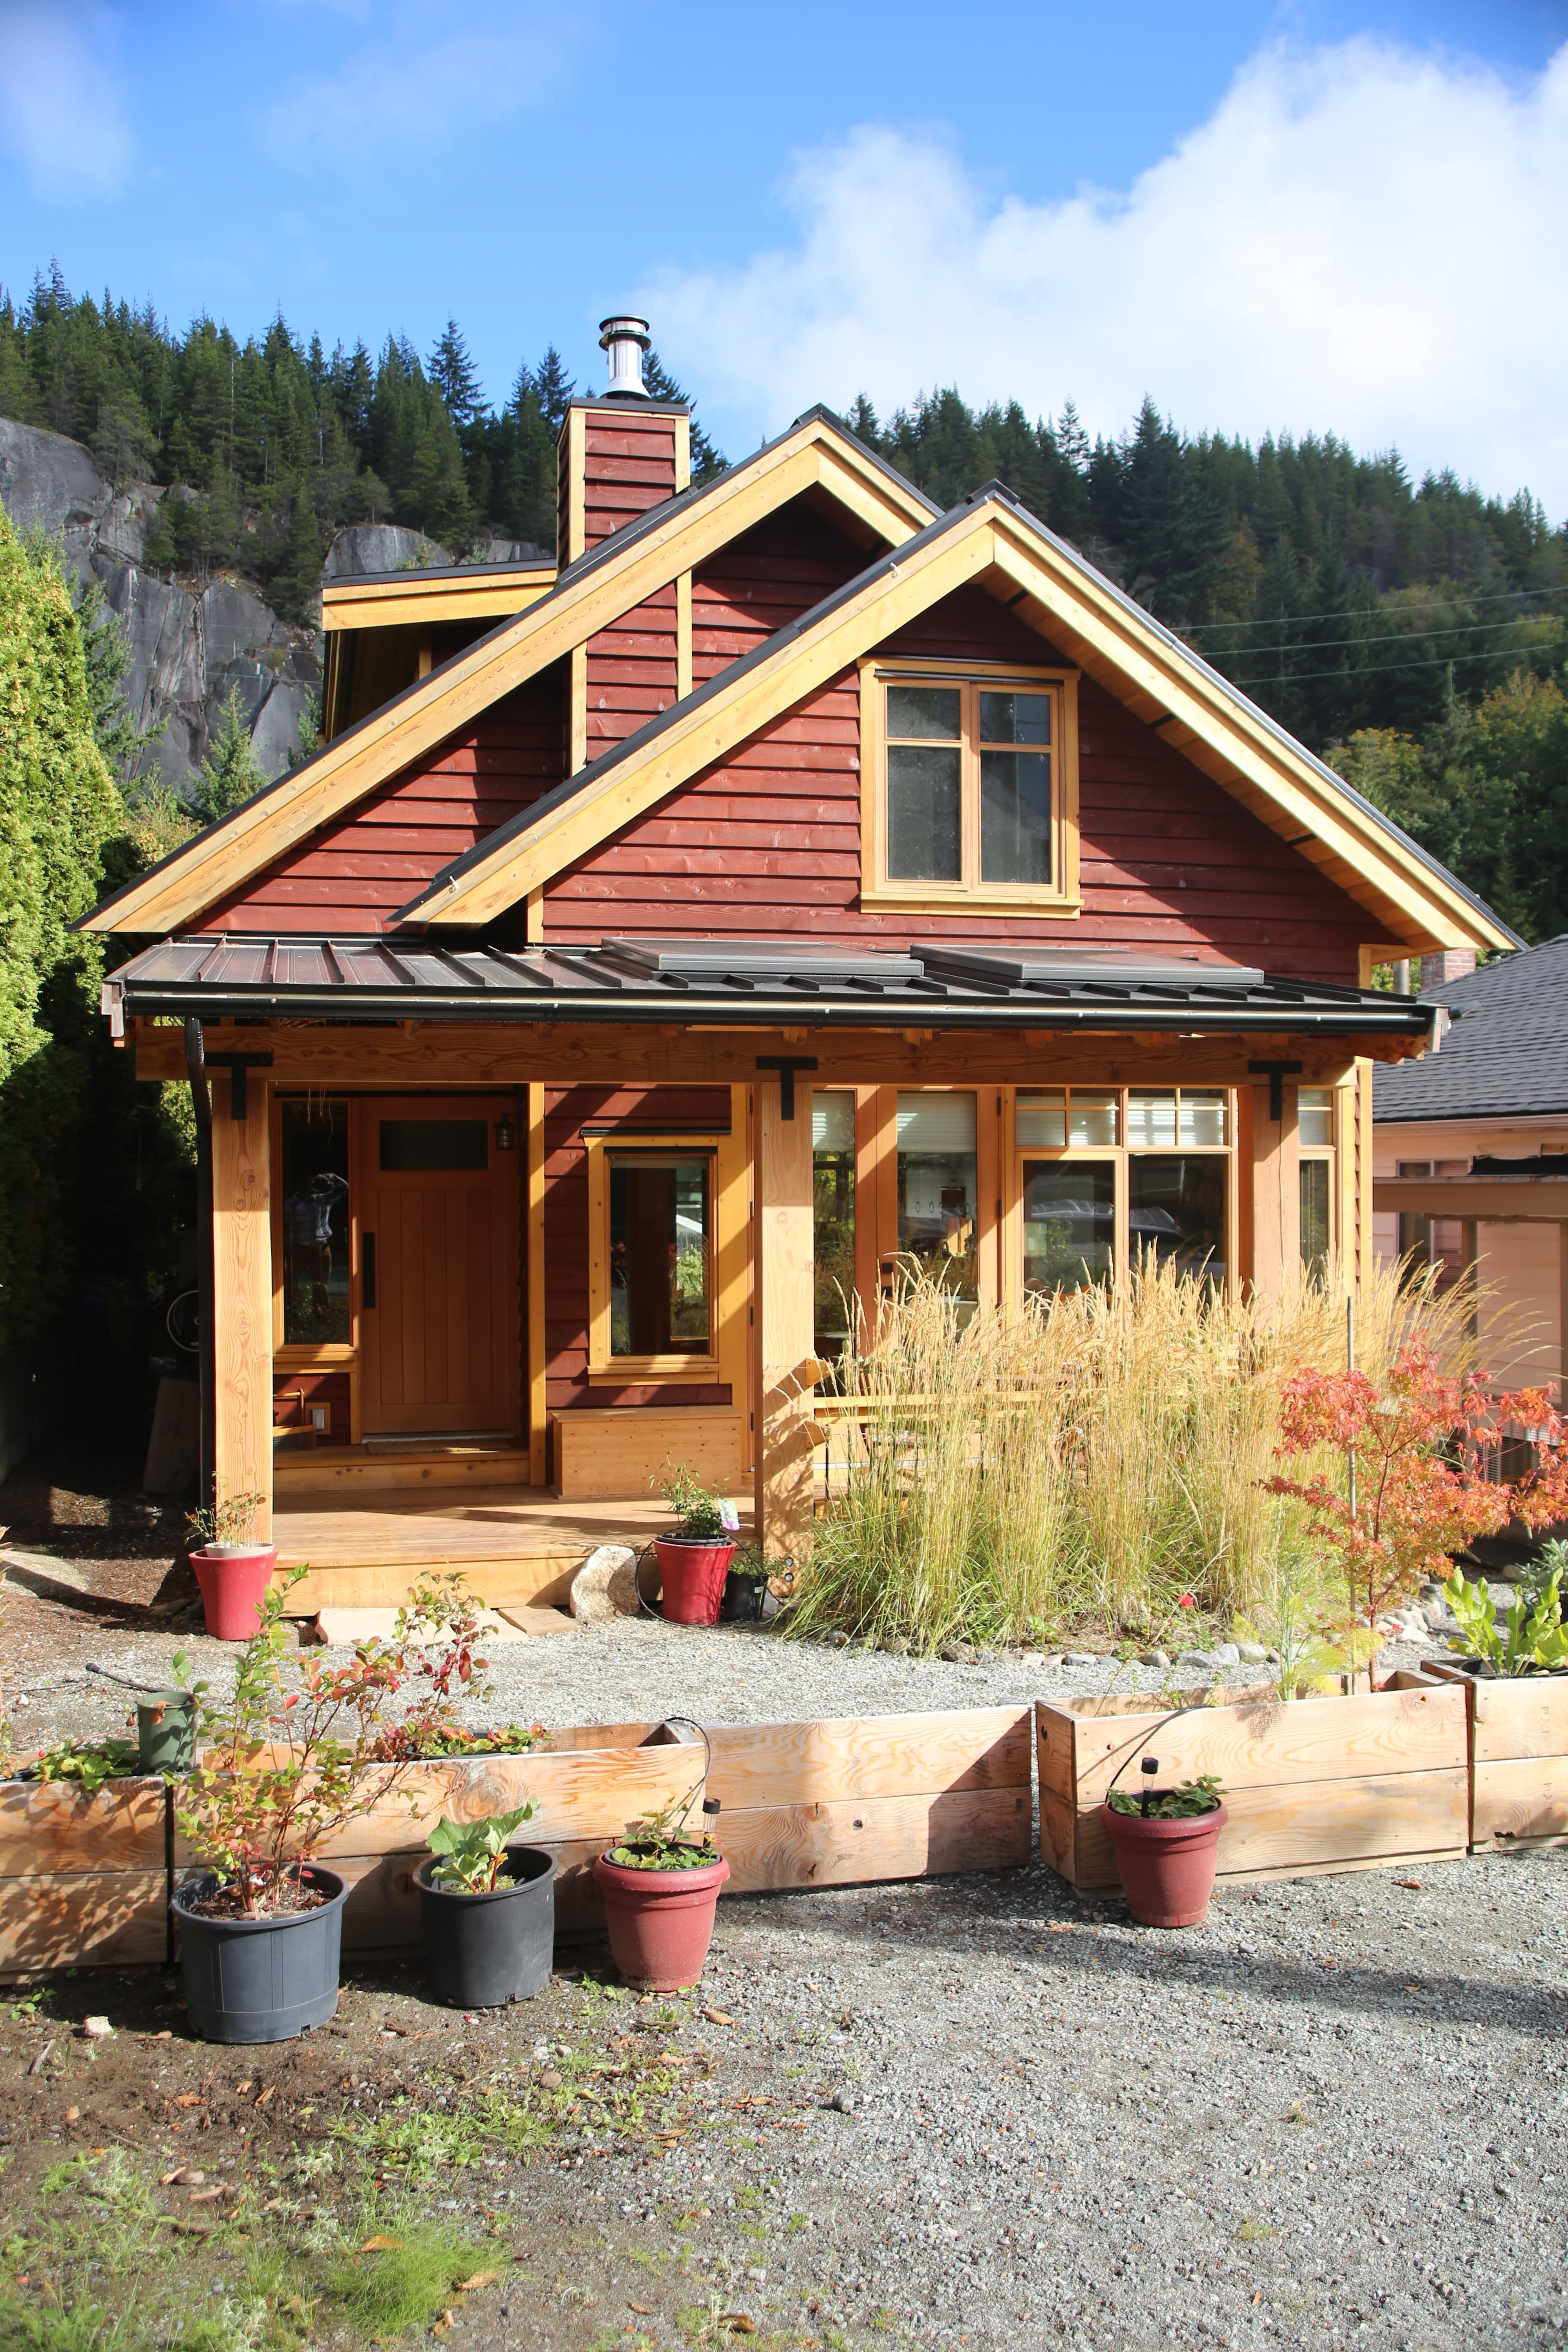 Best Small Home  Fine Homebuildings 2017 HOUSES Awards